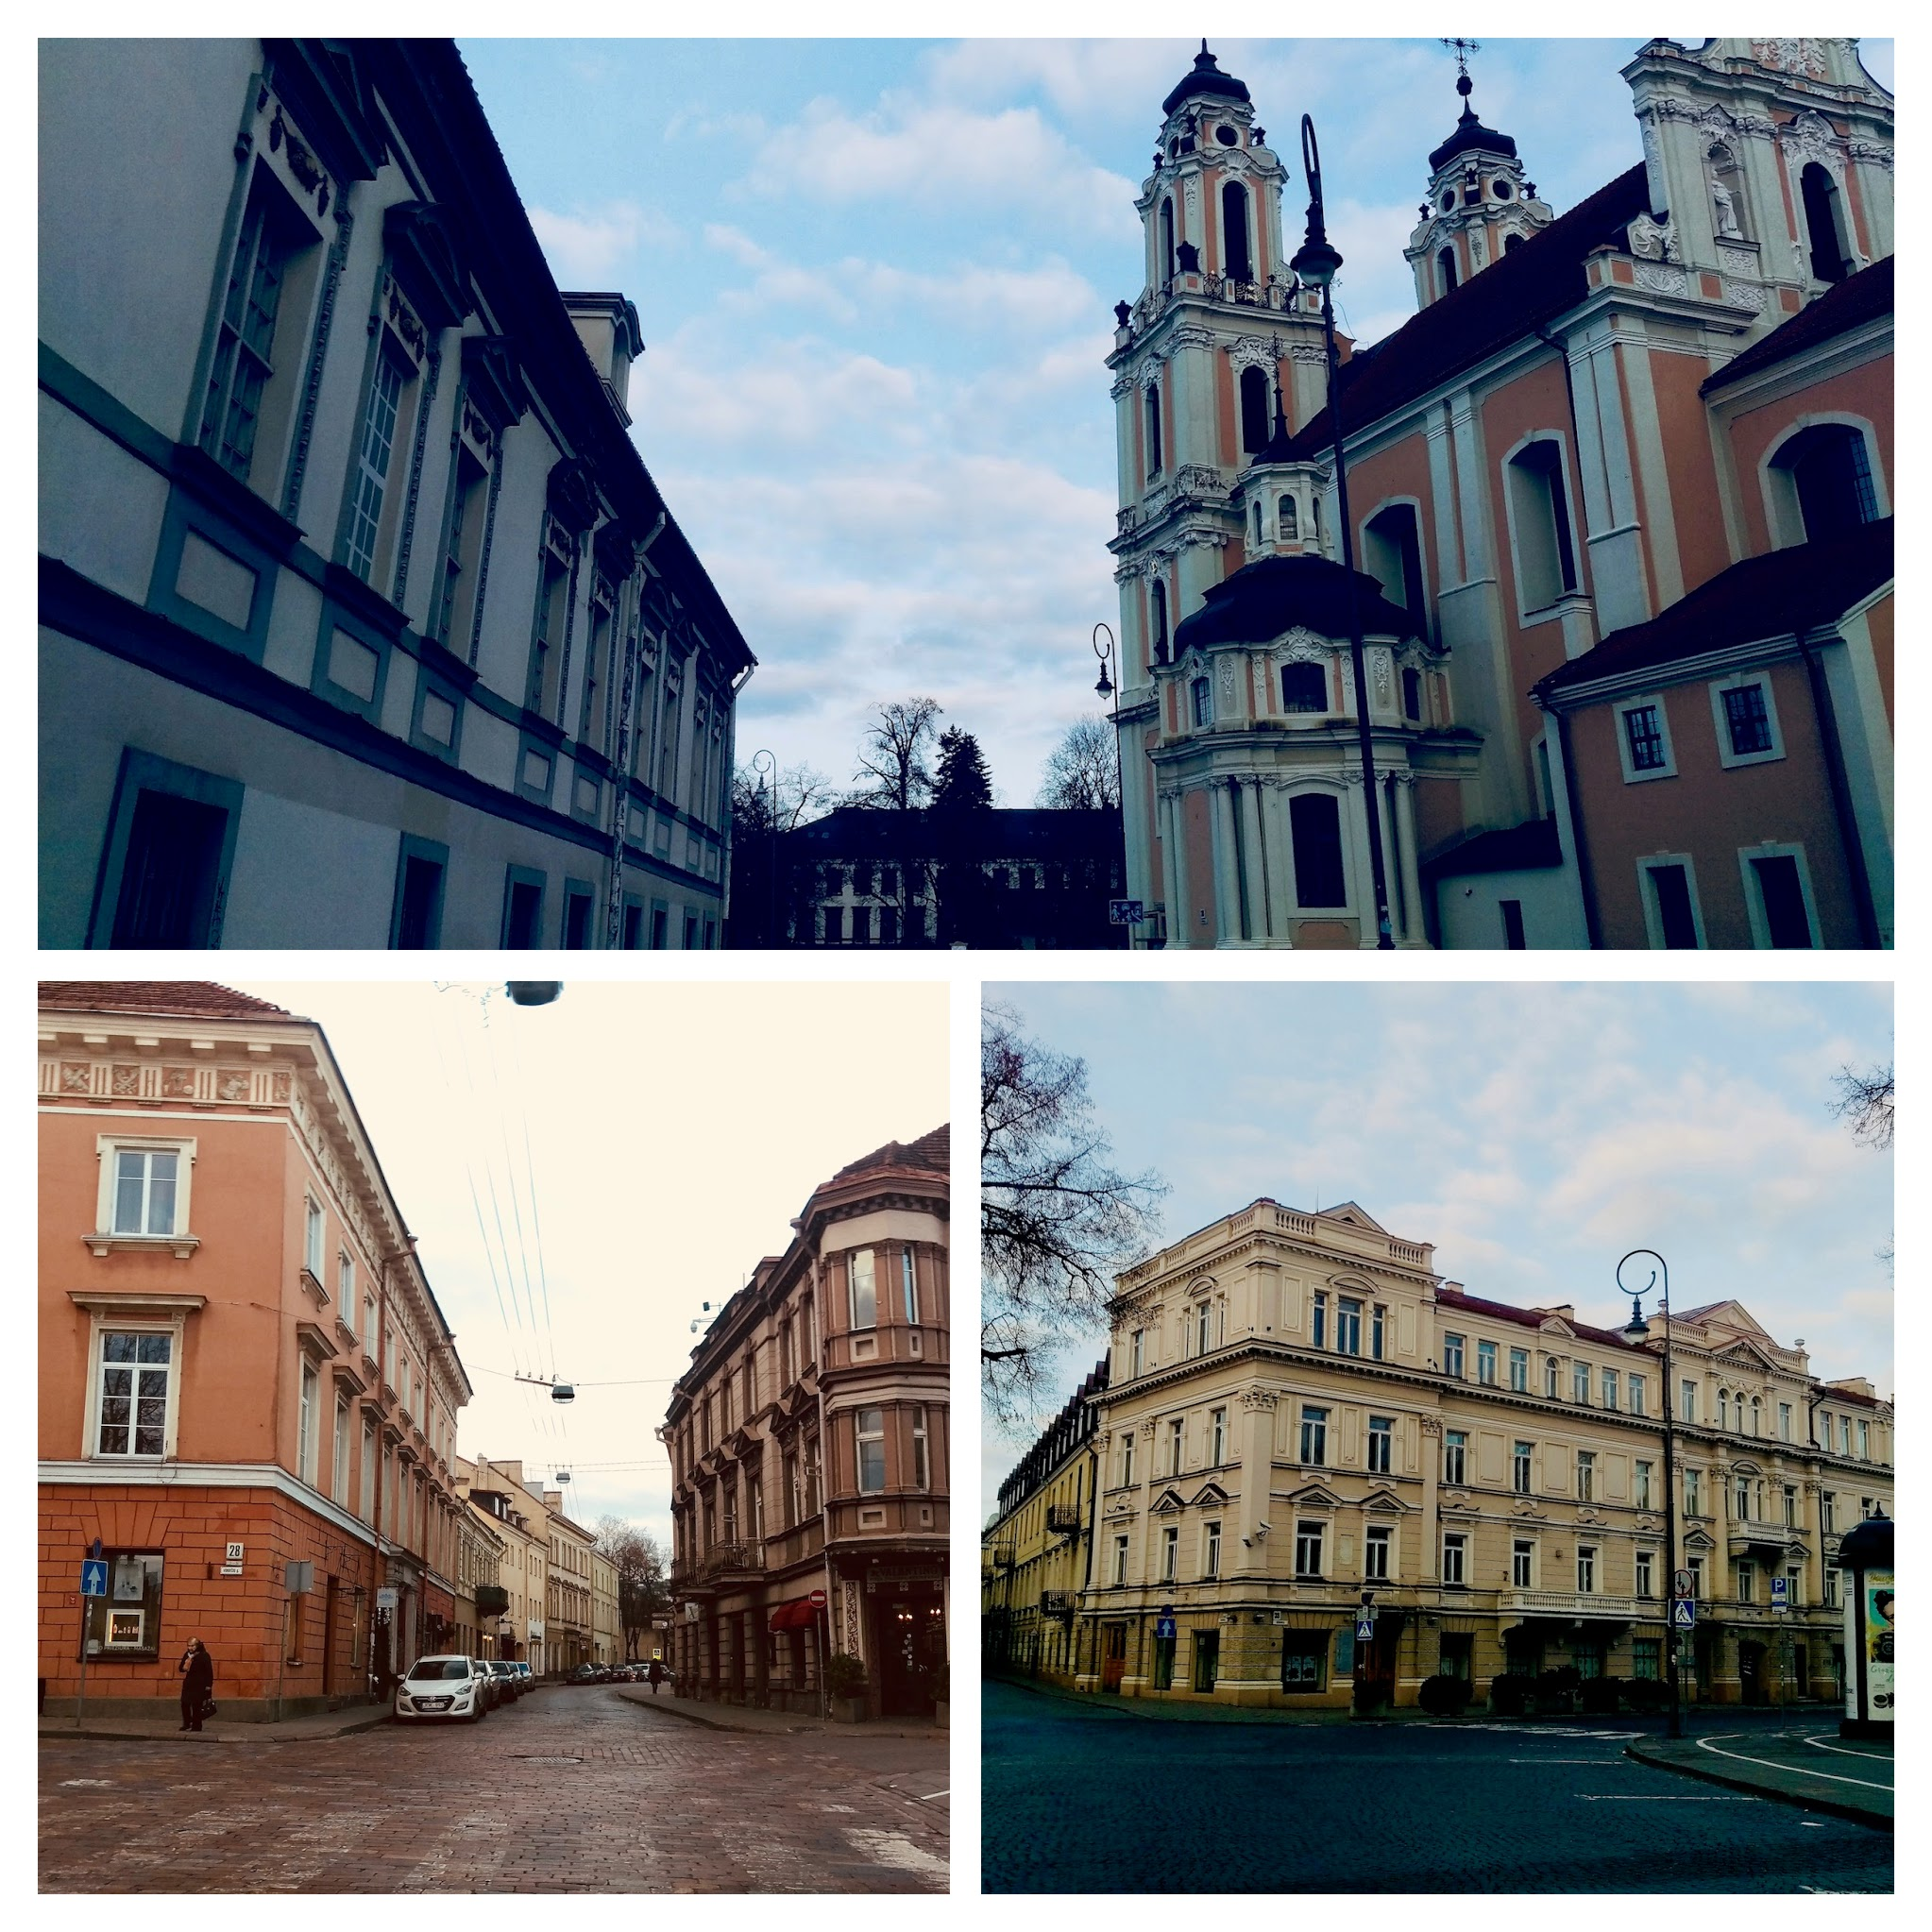 We fell in love with the architecture of Vilnius - such a great place to be